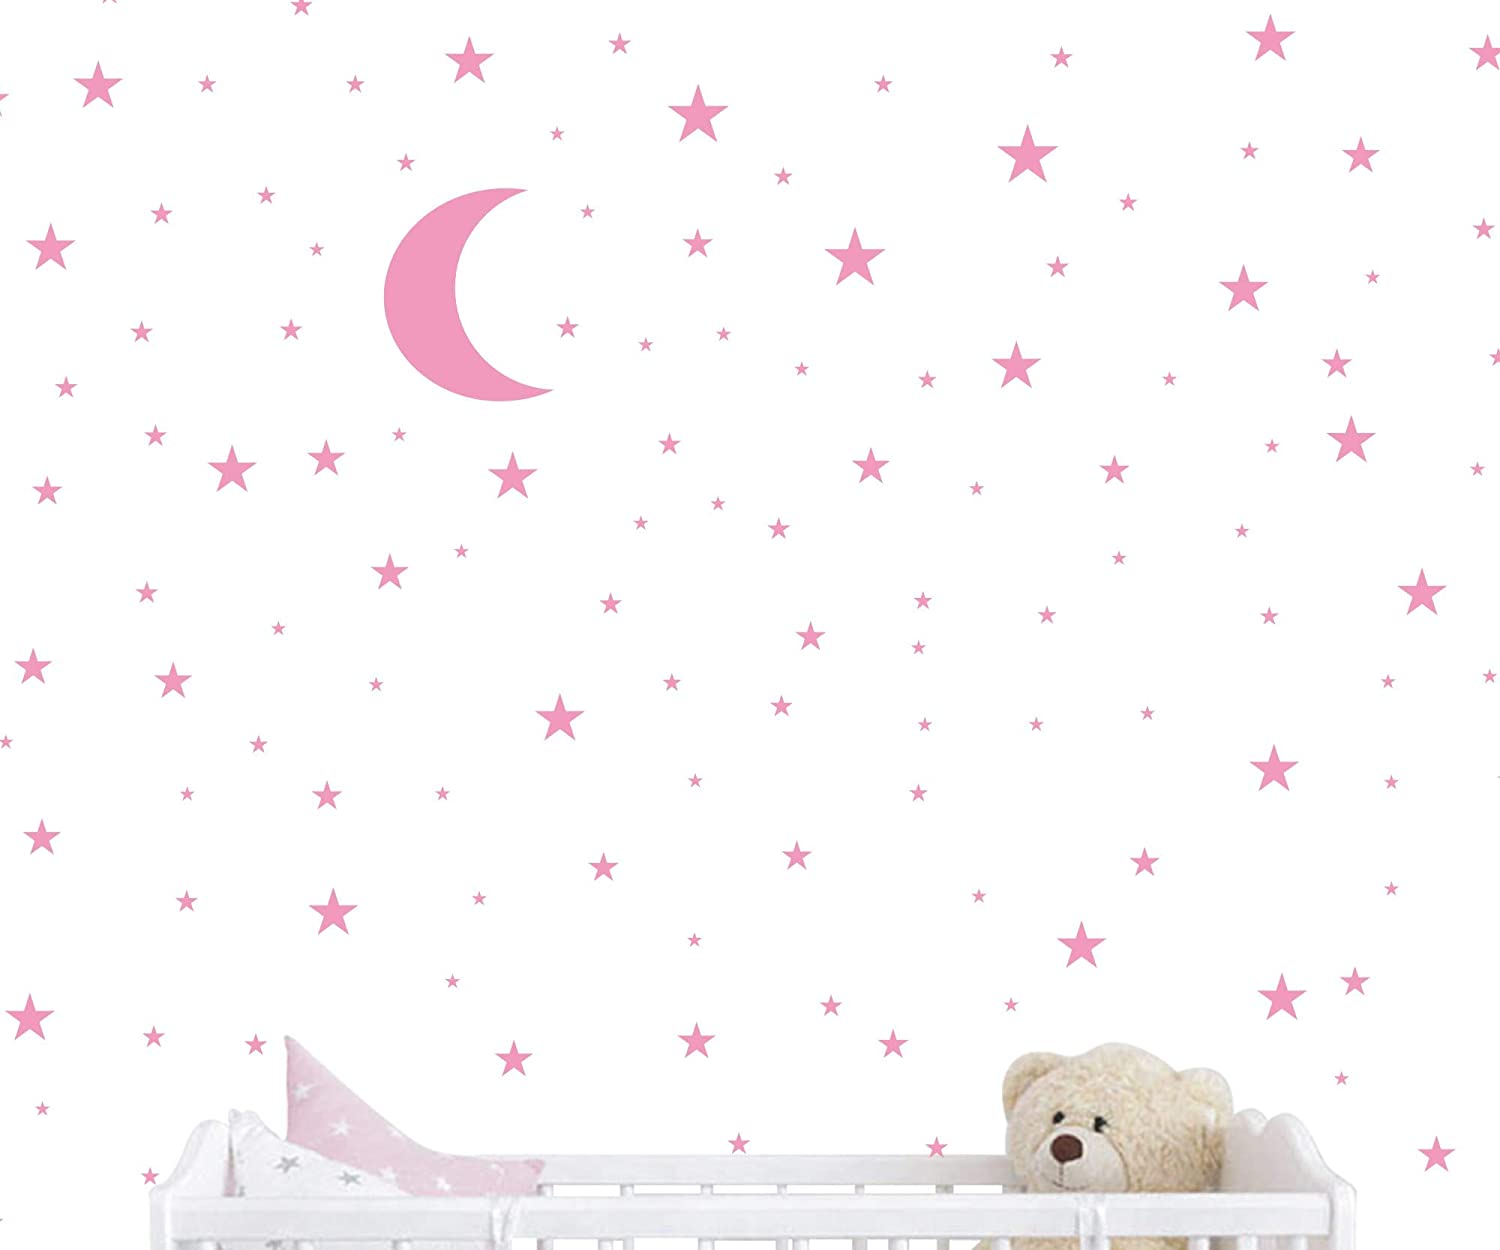 Moon and Stars Wall Decal Vinyl Sticker For Kids Boy Girls Baby Room Decoration Good Night Nursery Wall Decor Home House Bedroom Design YMX16 (Soft Pink)